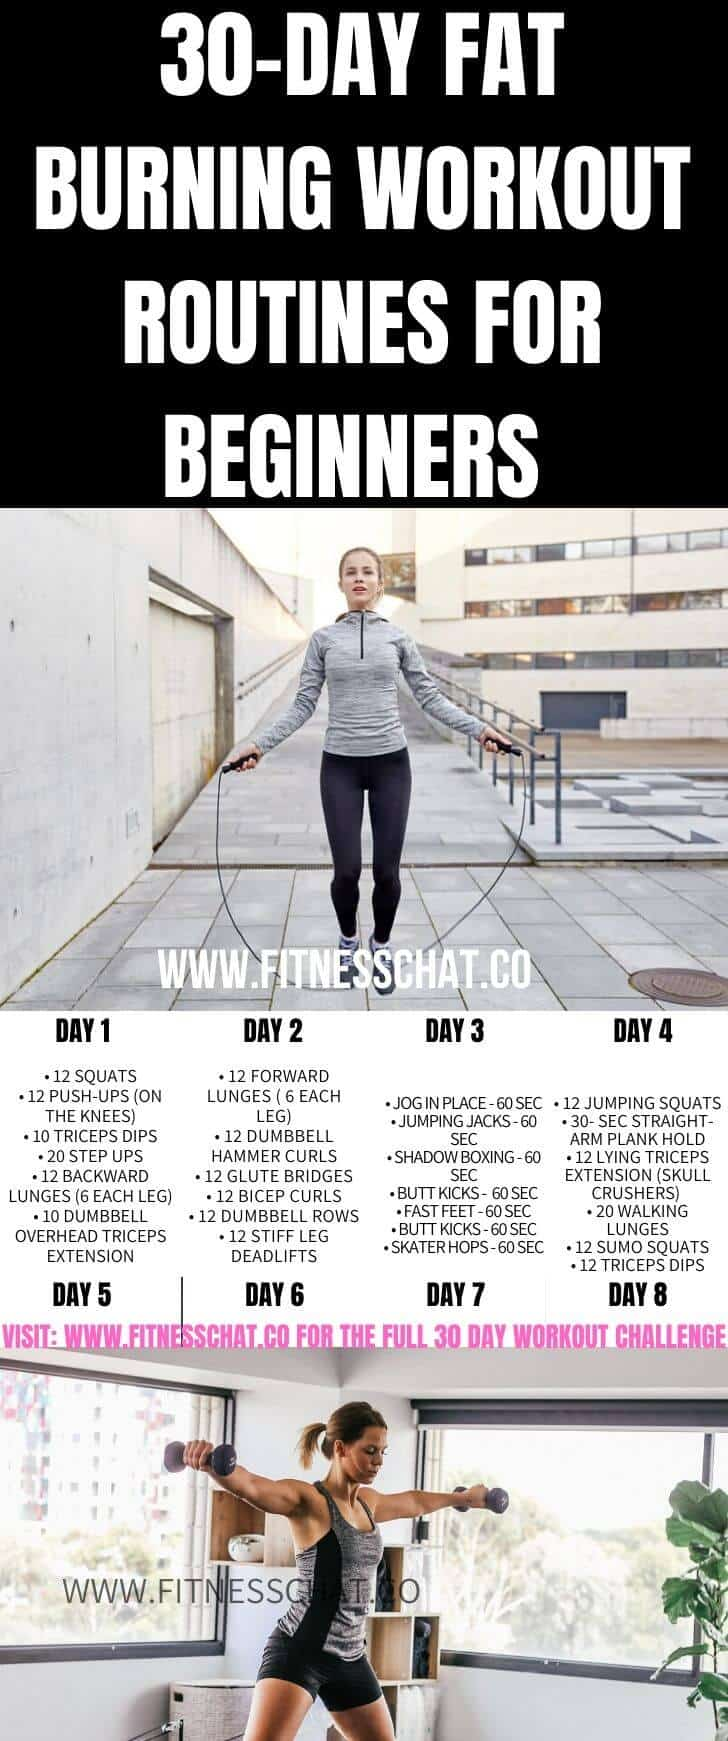 30-Day Fat Burning Workout Routines for Beginners. Join the 30-day challenge for a full body workout